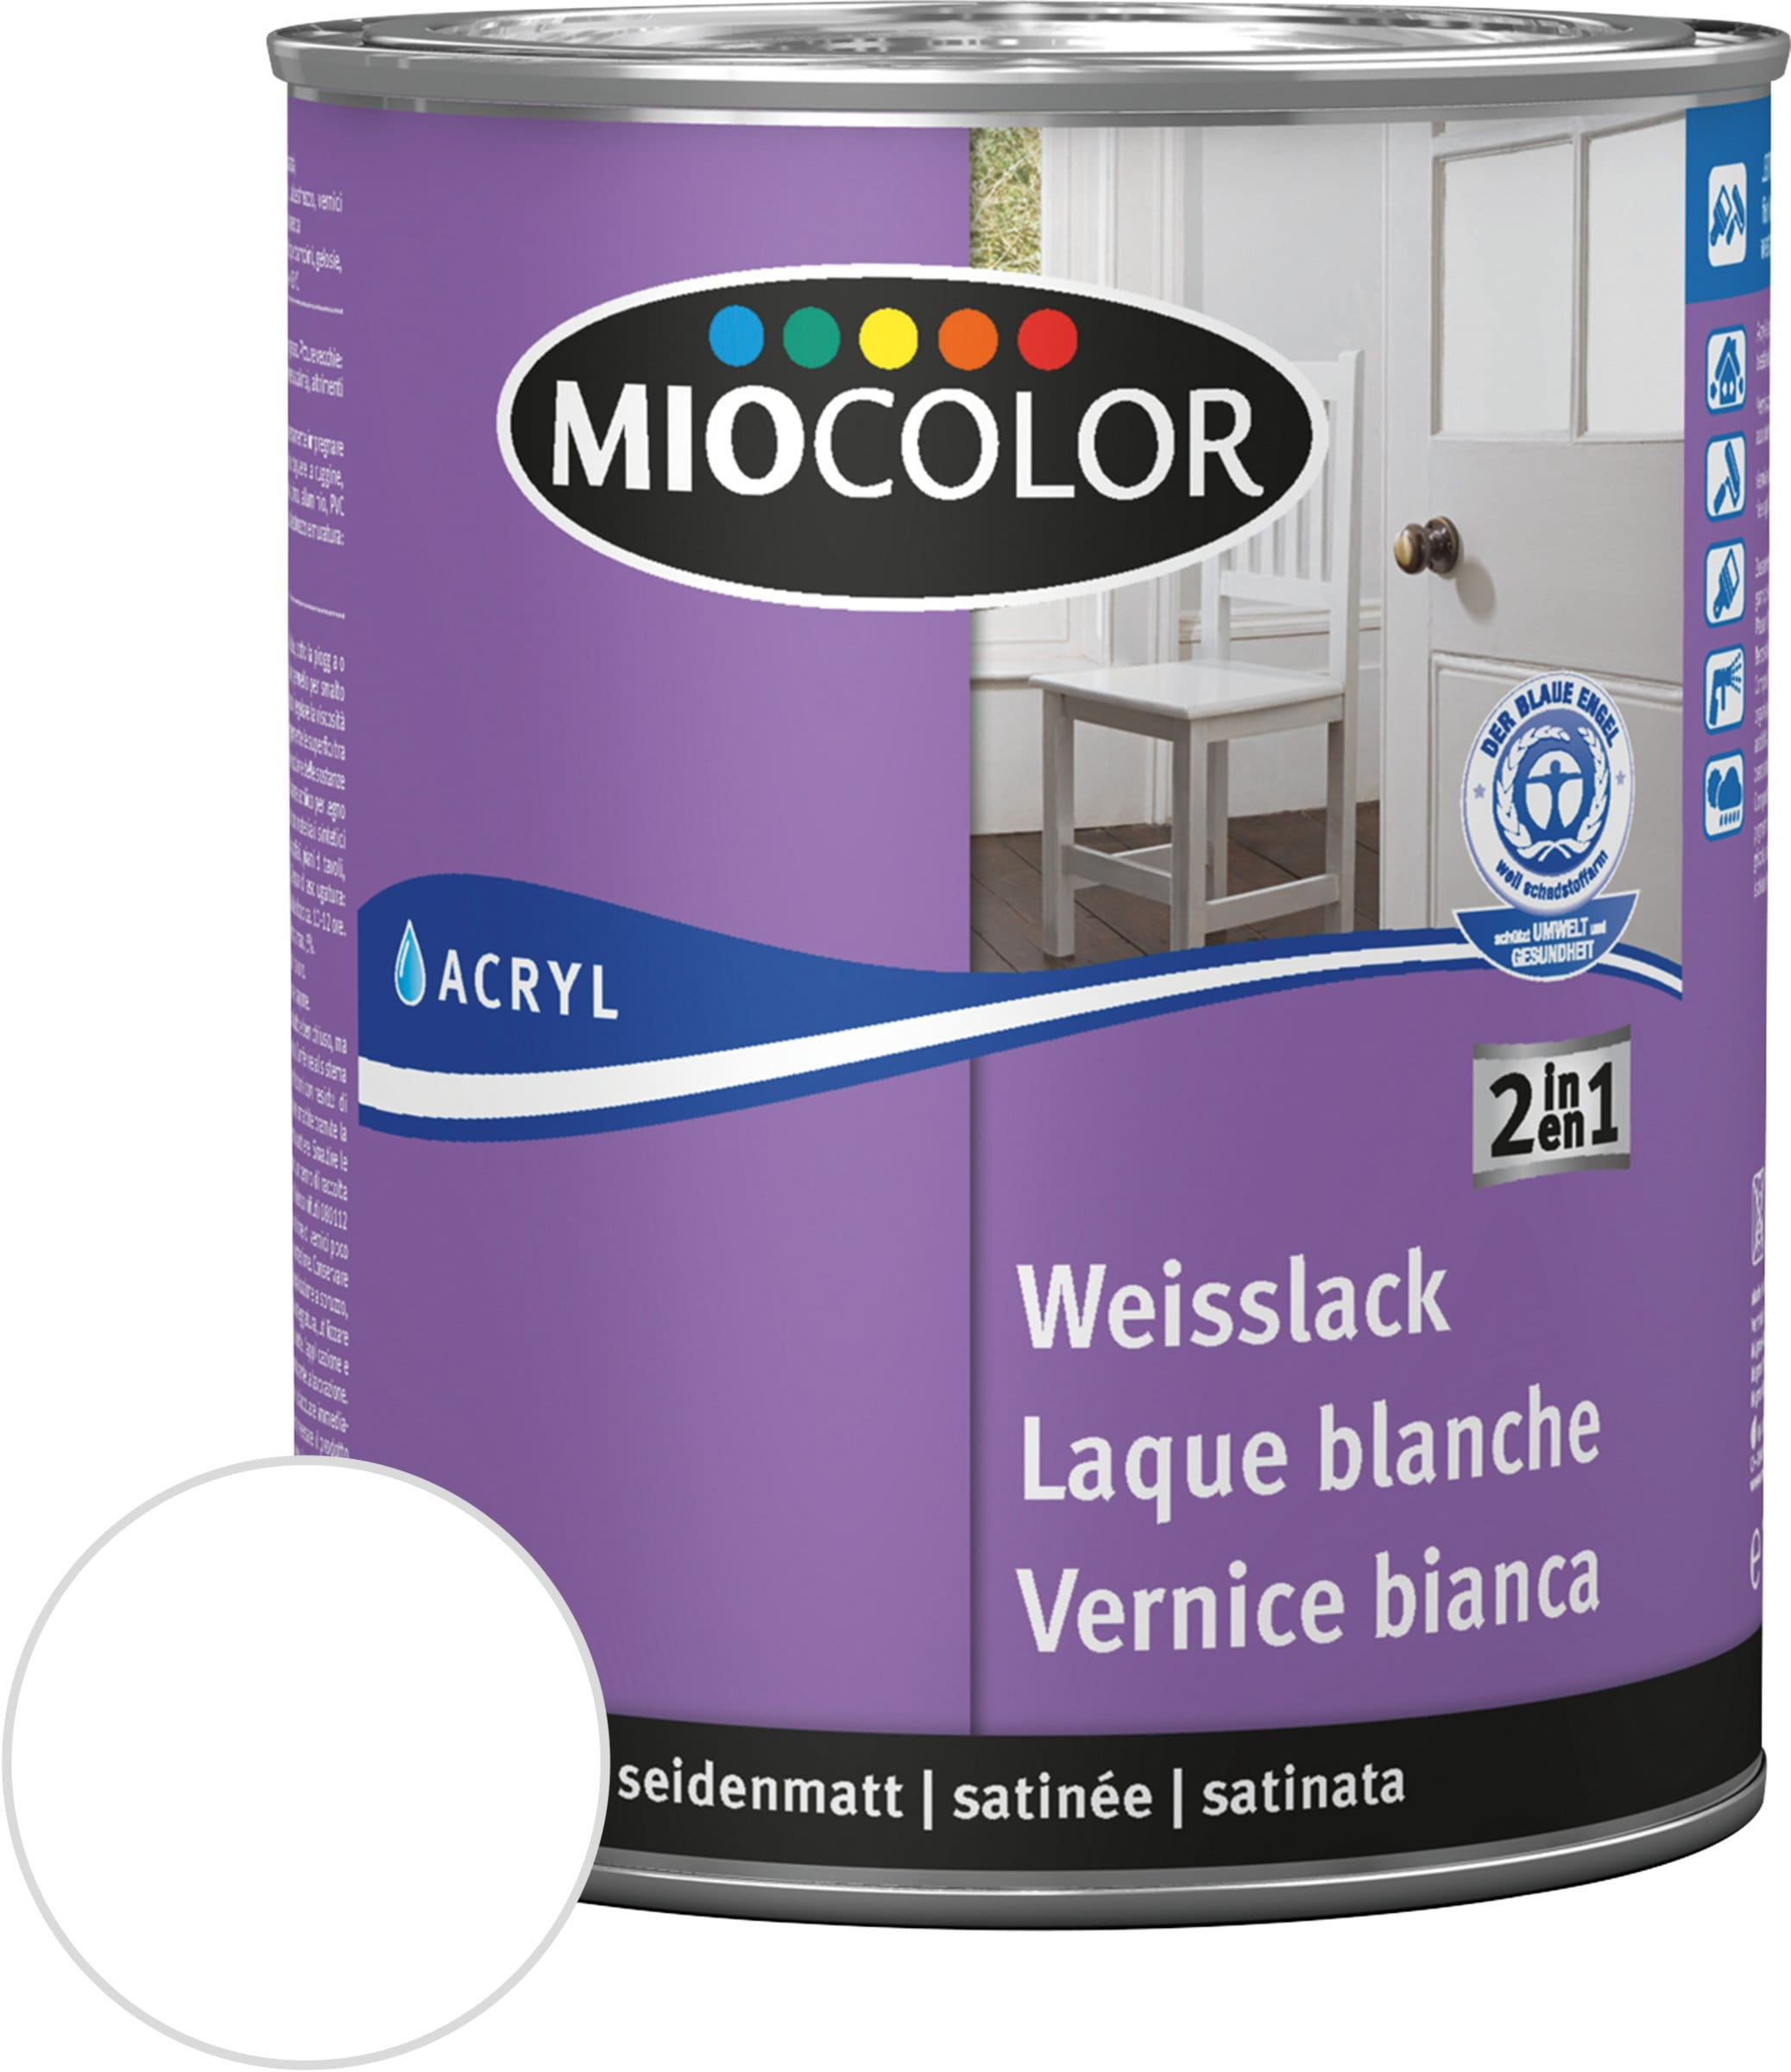 miocolor acryl weisslack seidenmatt migipedia. Black Bedroom Furniture Sets. Home Design Ideas